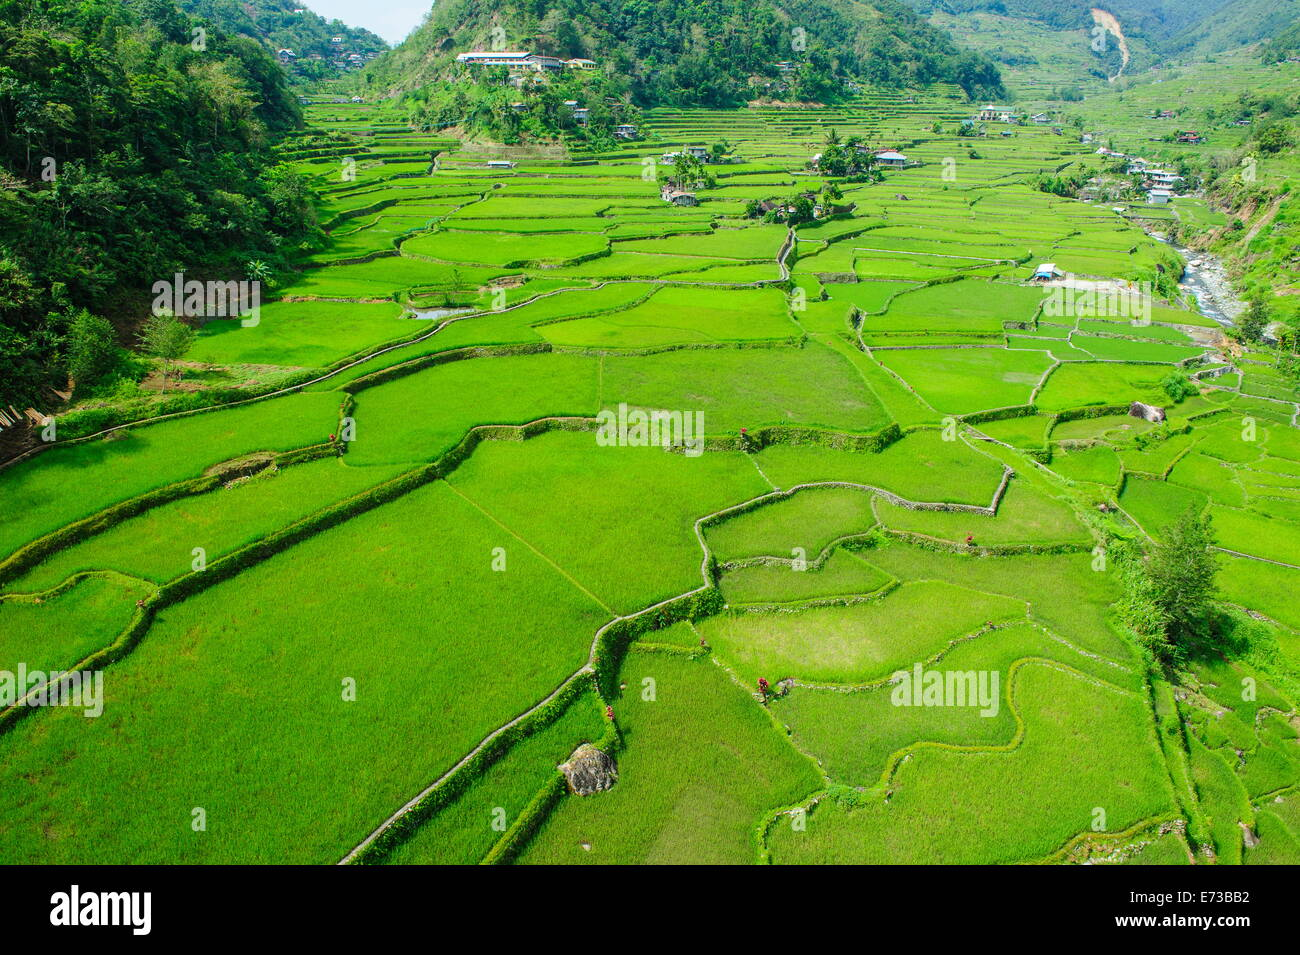 Hapao rice terraces, Banaue, UNESCO World Heritage Site, Luzon, Philippines, Southeast Asia, Asia - Stock Image